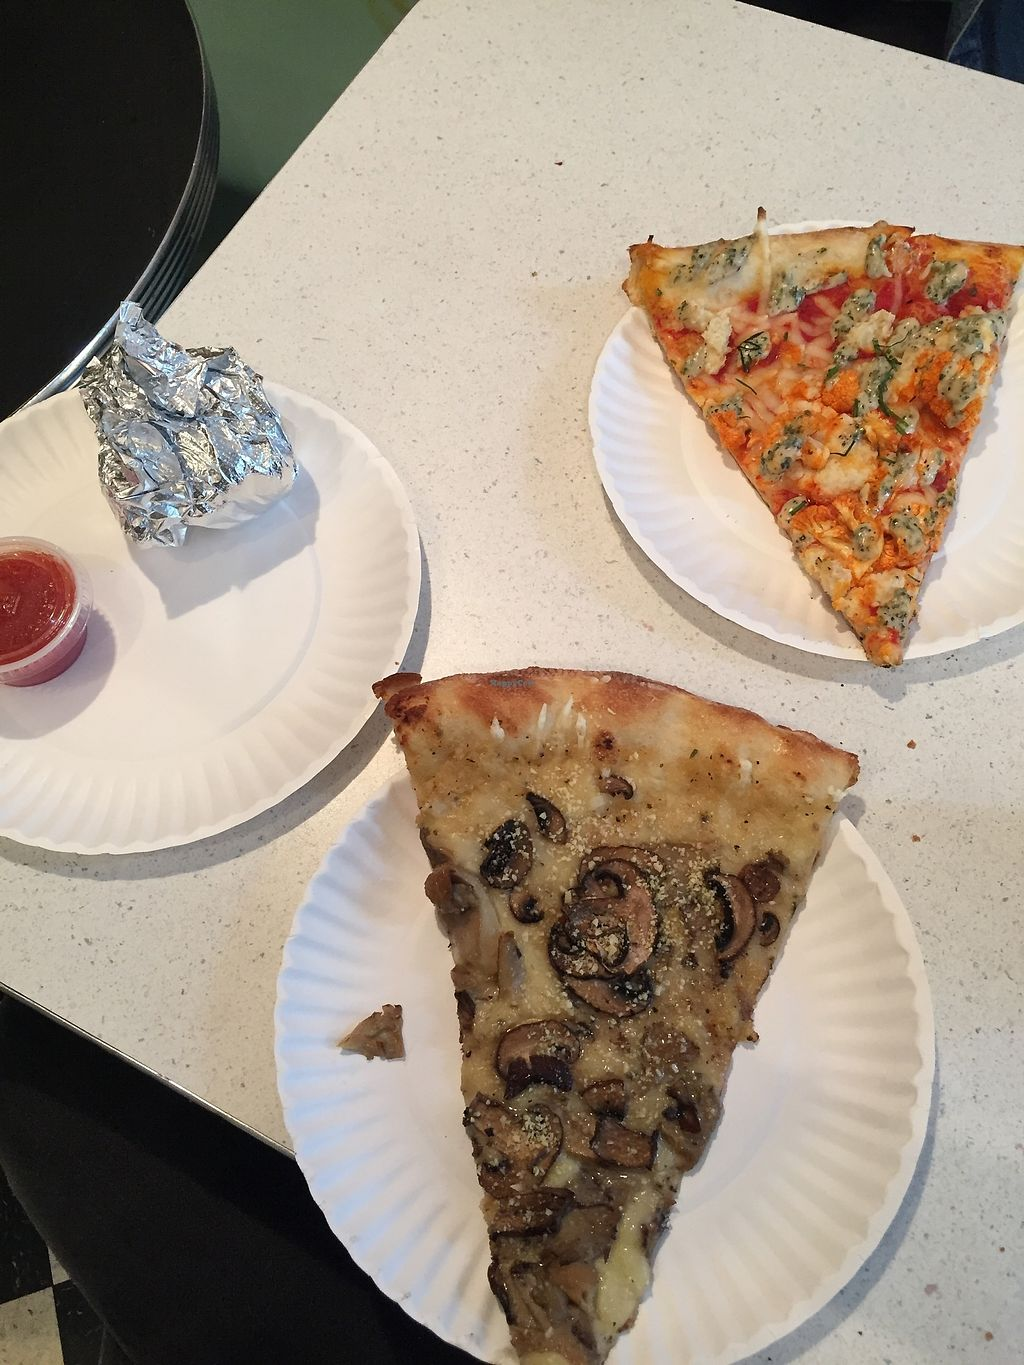 "Photo of Screamer's Pizzeria  by <a href=""/members/profile/Yasminesan"">Yasminesan</a> <br/>Pizza slices and dough balls wrapped to go (mushroom one was amazing!) <br/> October 29, 2017  - <a href='/contact/abuse/image/75081/319760'>Report</a>"